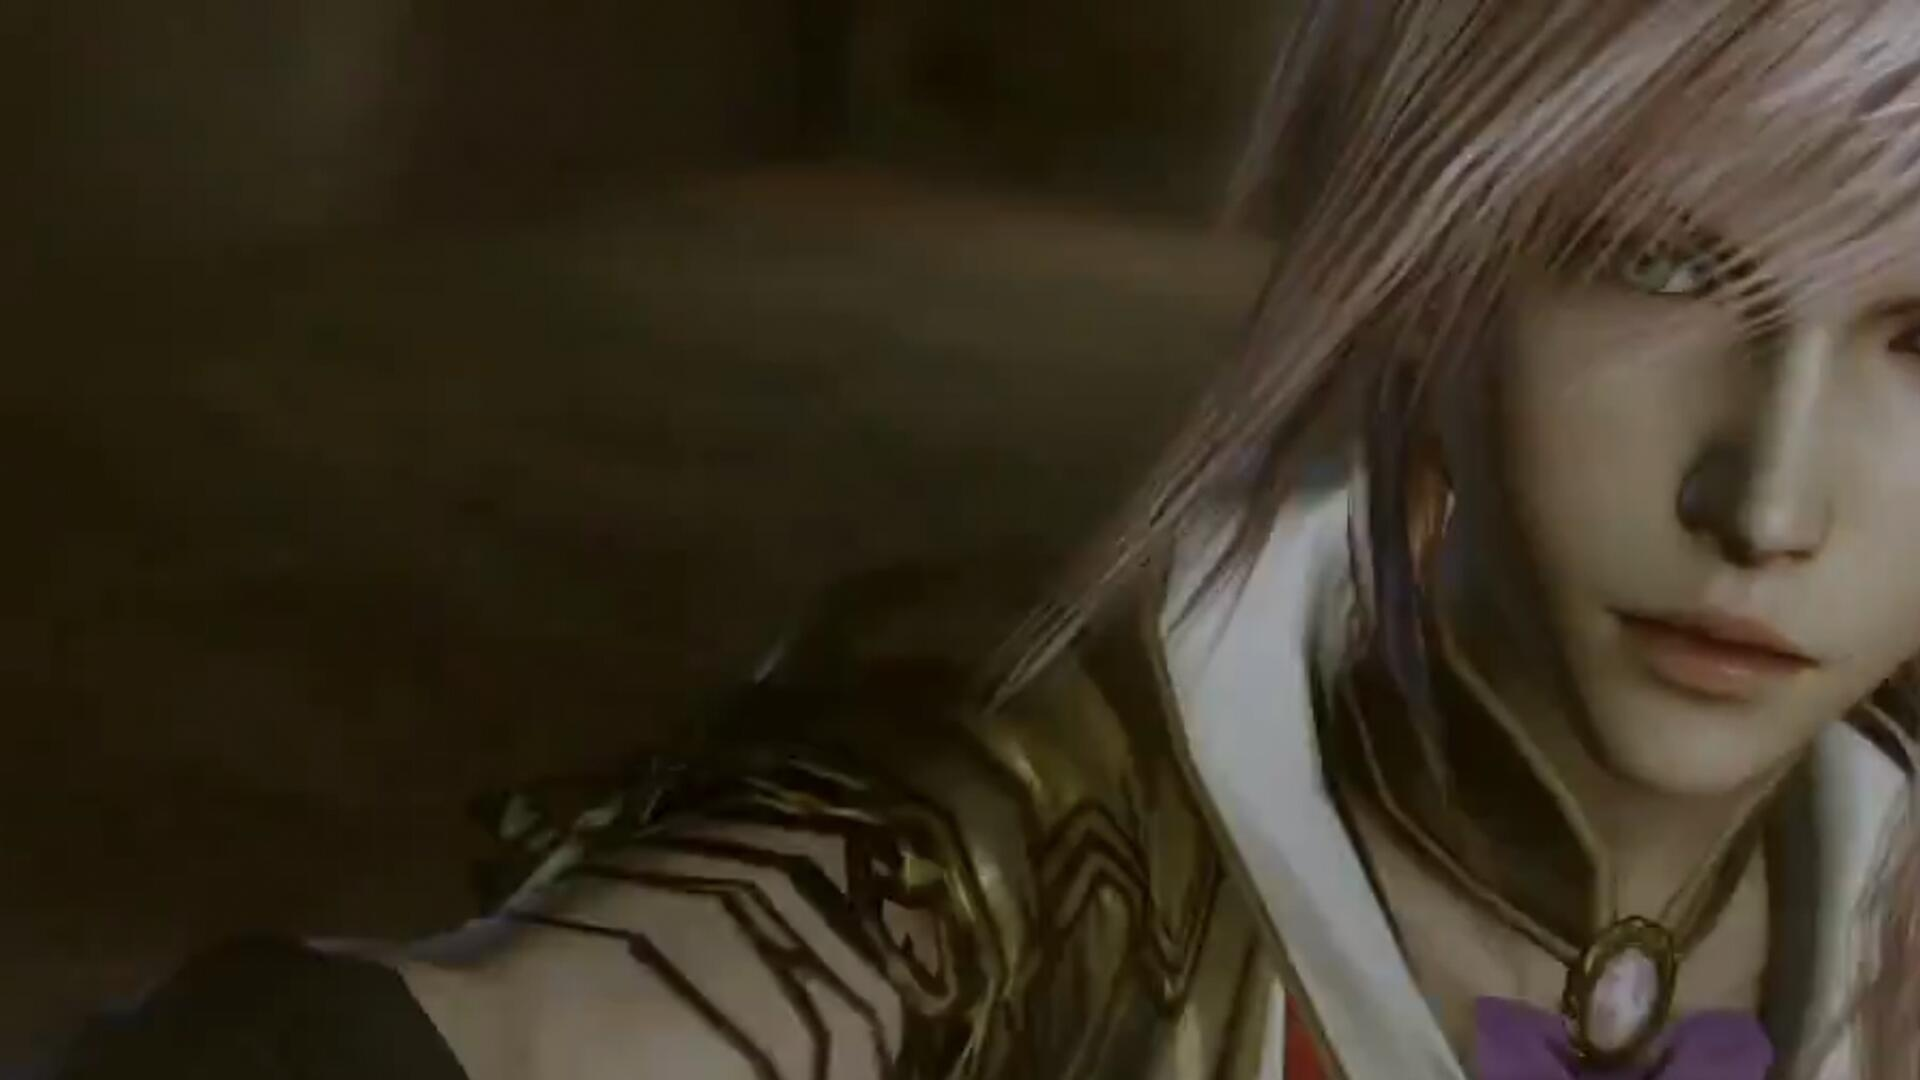 Lightning Returns: Final Fantasy XIII Guide: Wildlands Quests and How to Beat Caius Ballad and Cactair